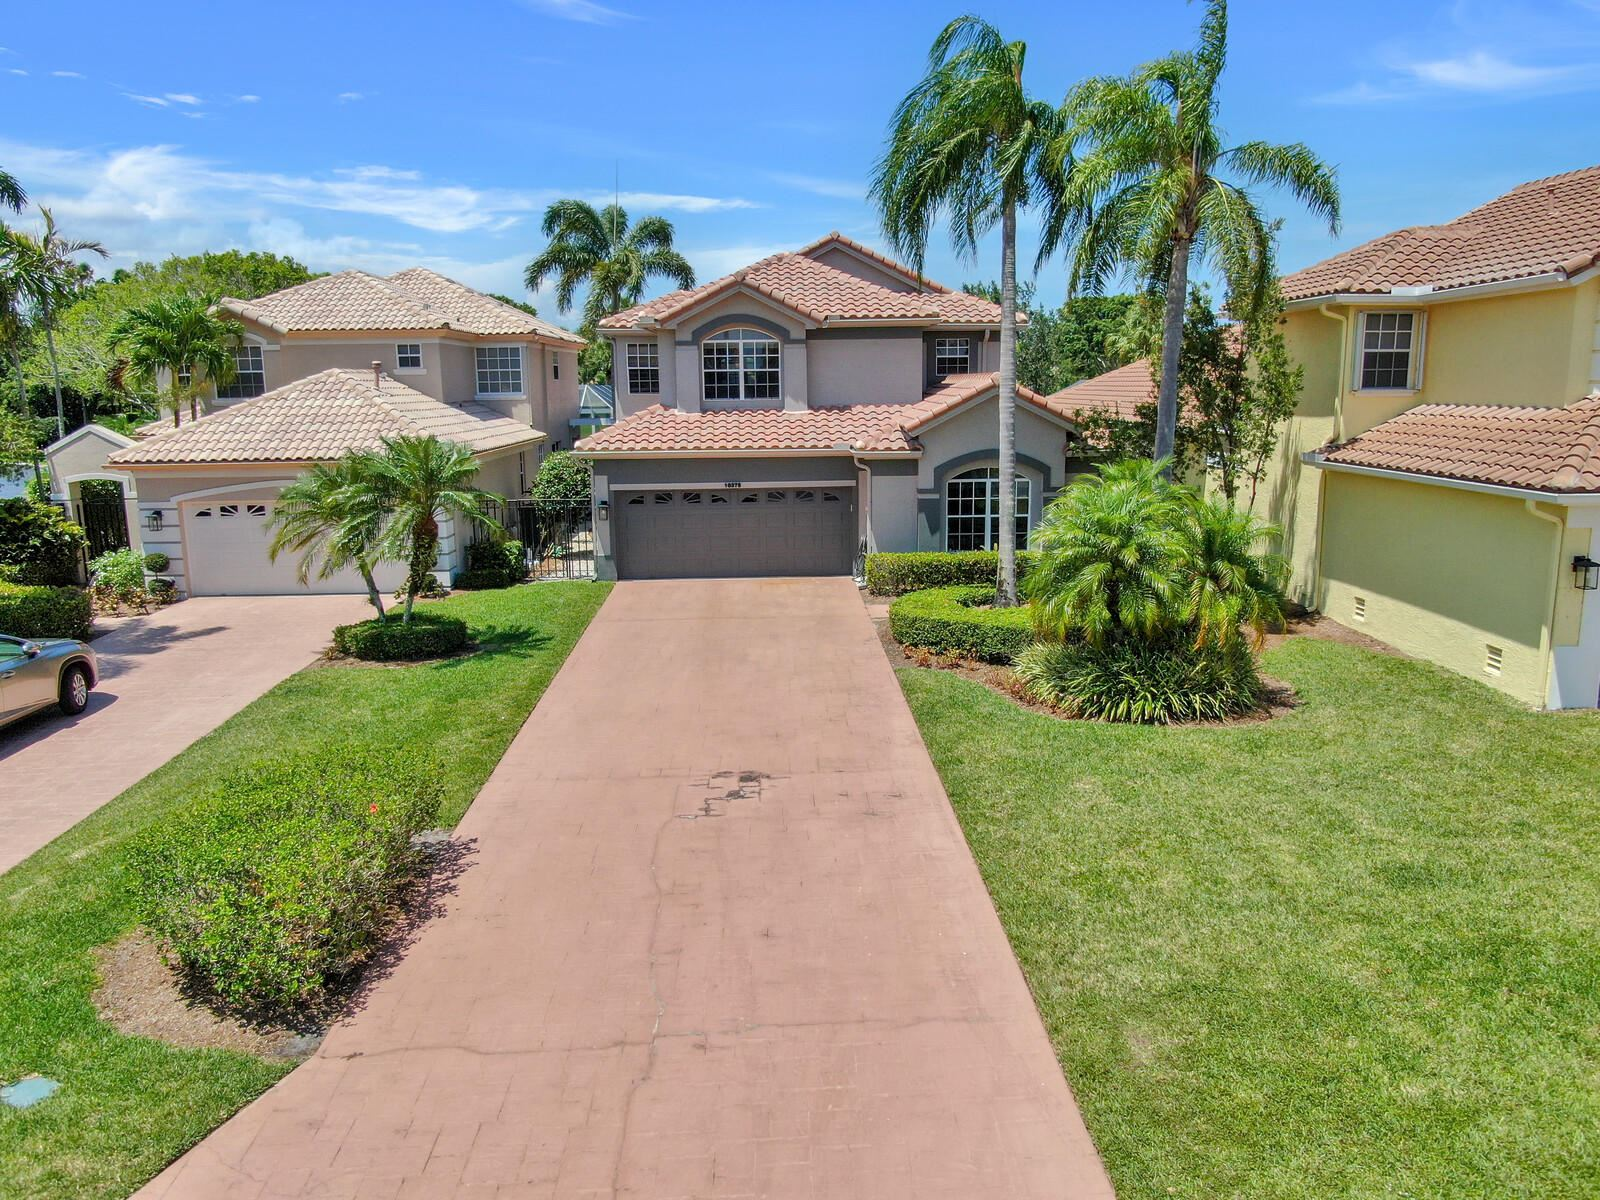 Photo of 10375 Osprey Trace, West Palm Beach, FL 33412 (MLS # RX-10714027)